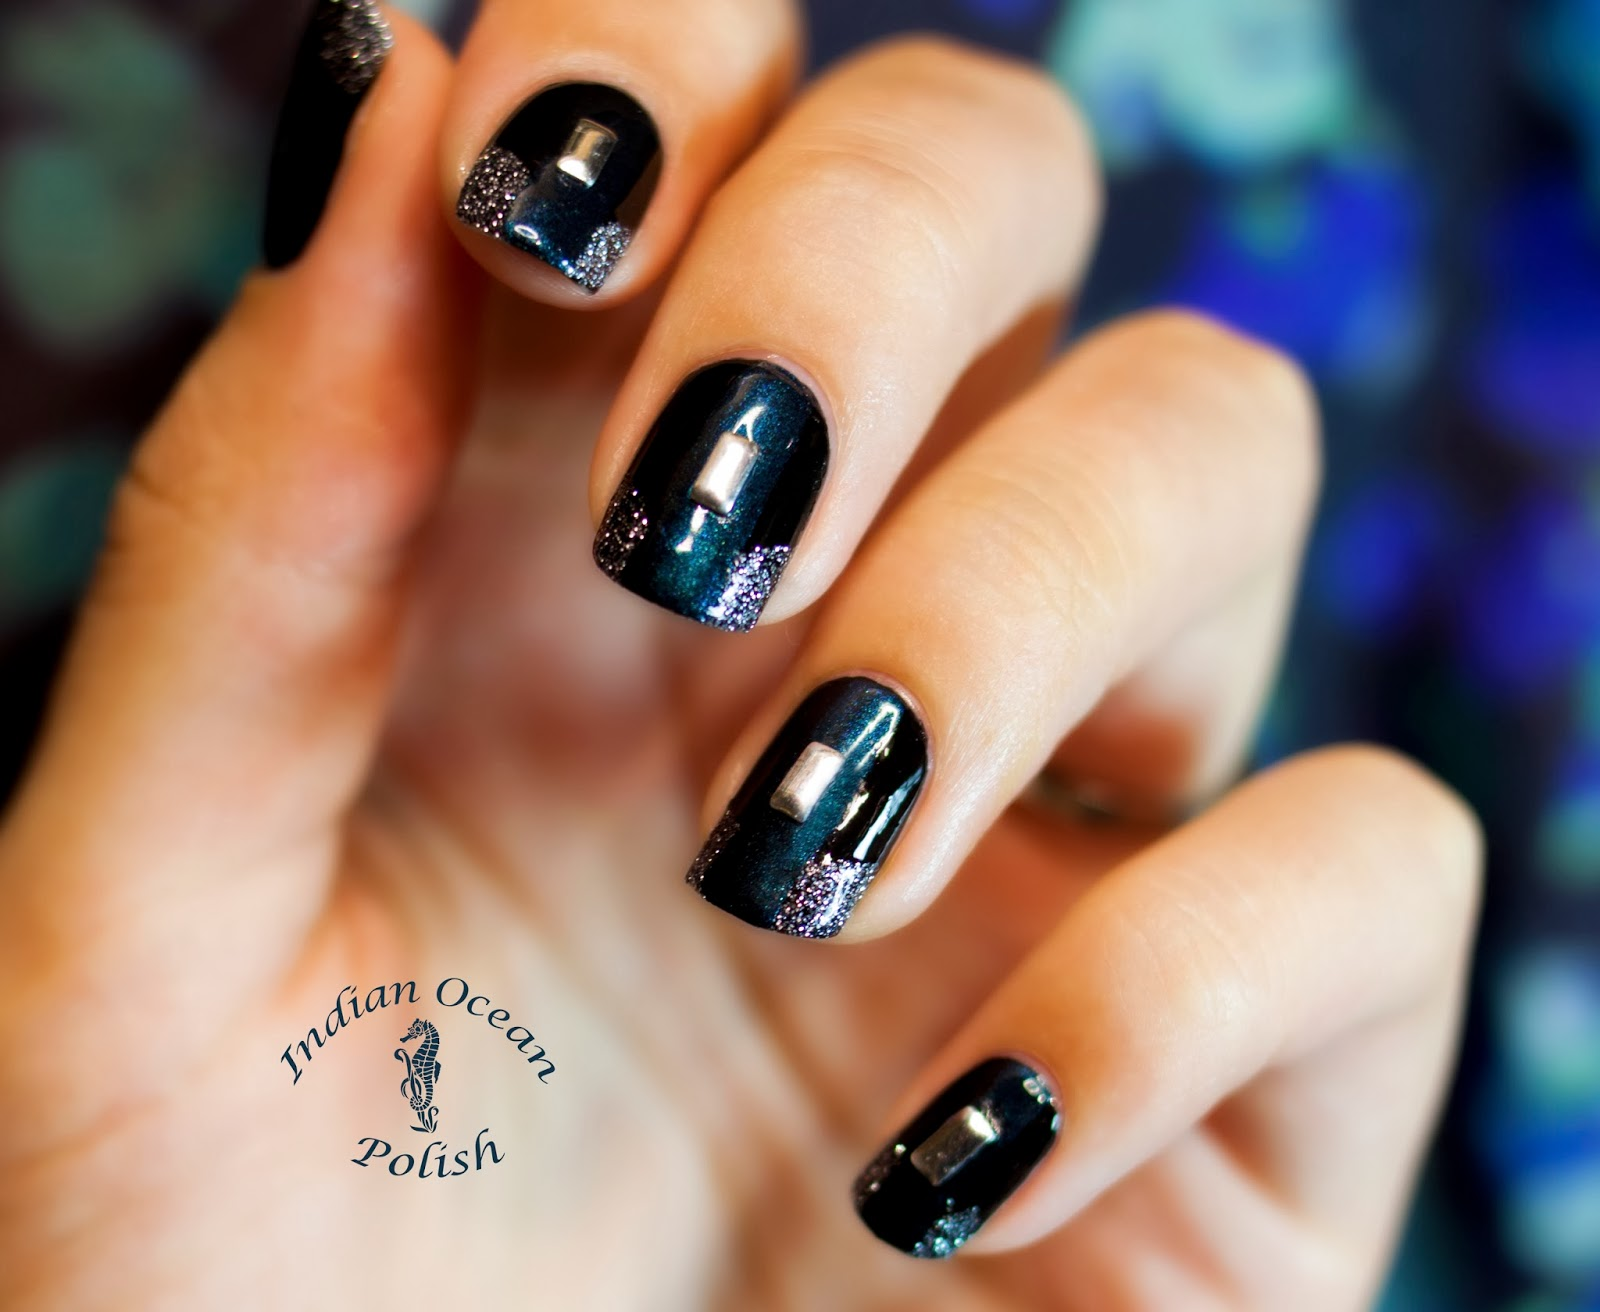 Indian ocean polish easy nail art with essie dive bar easy nail art with essie dive bar prinsesfo Images